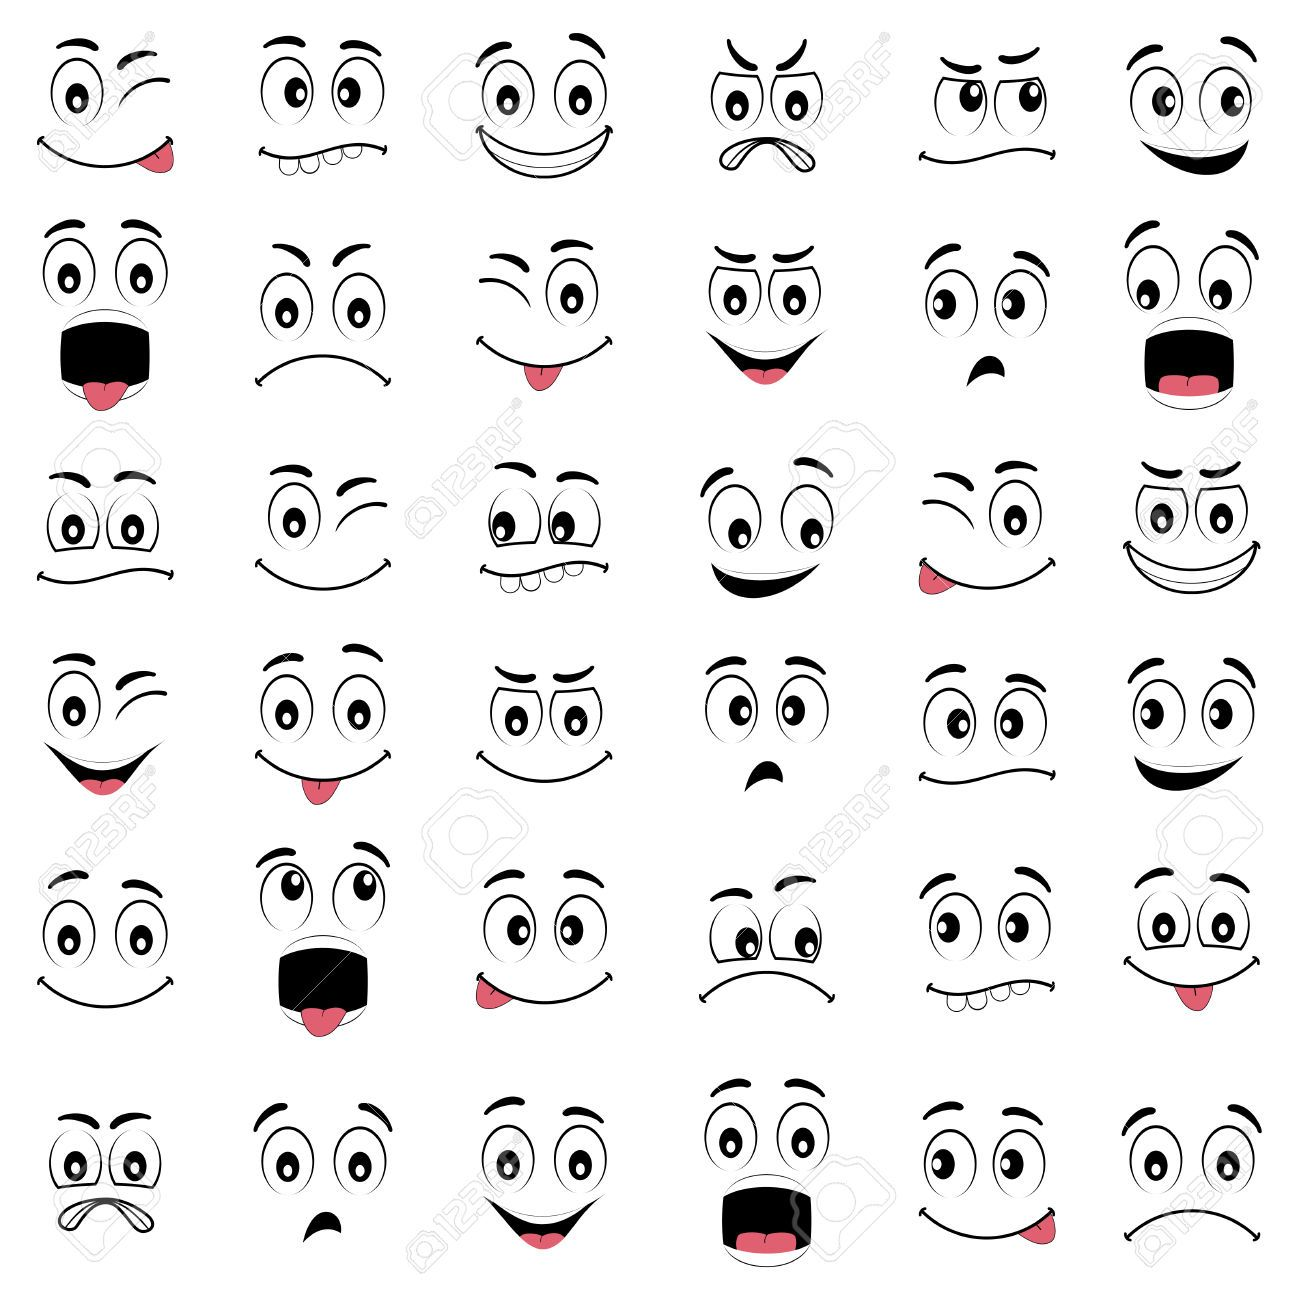 small resolution of pin by ednor therriault on cartoon eyes cartoon faces cartoon cartoon face diagram